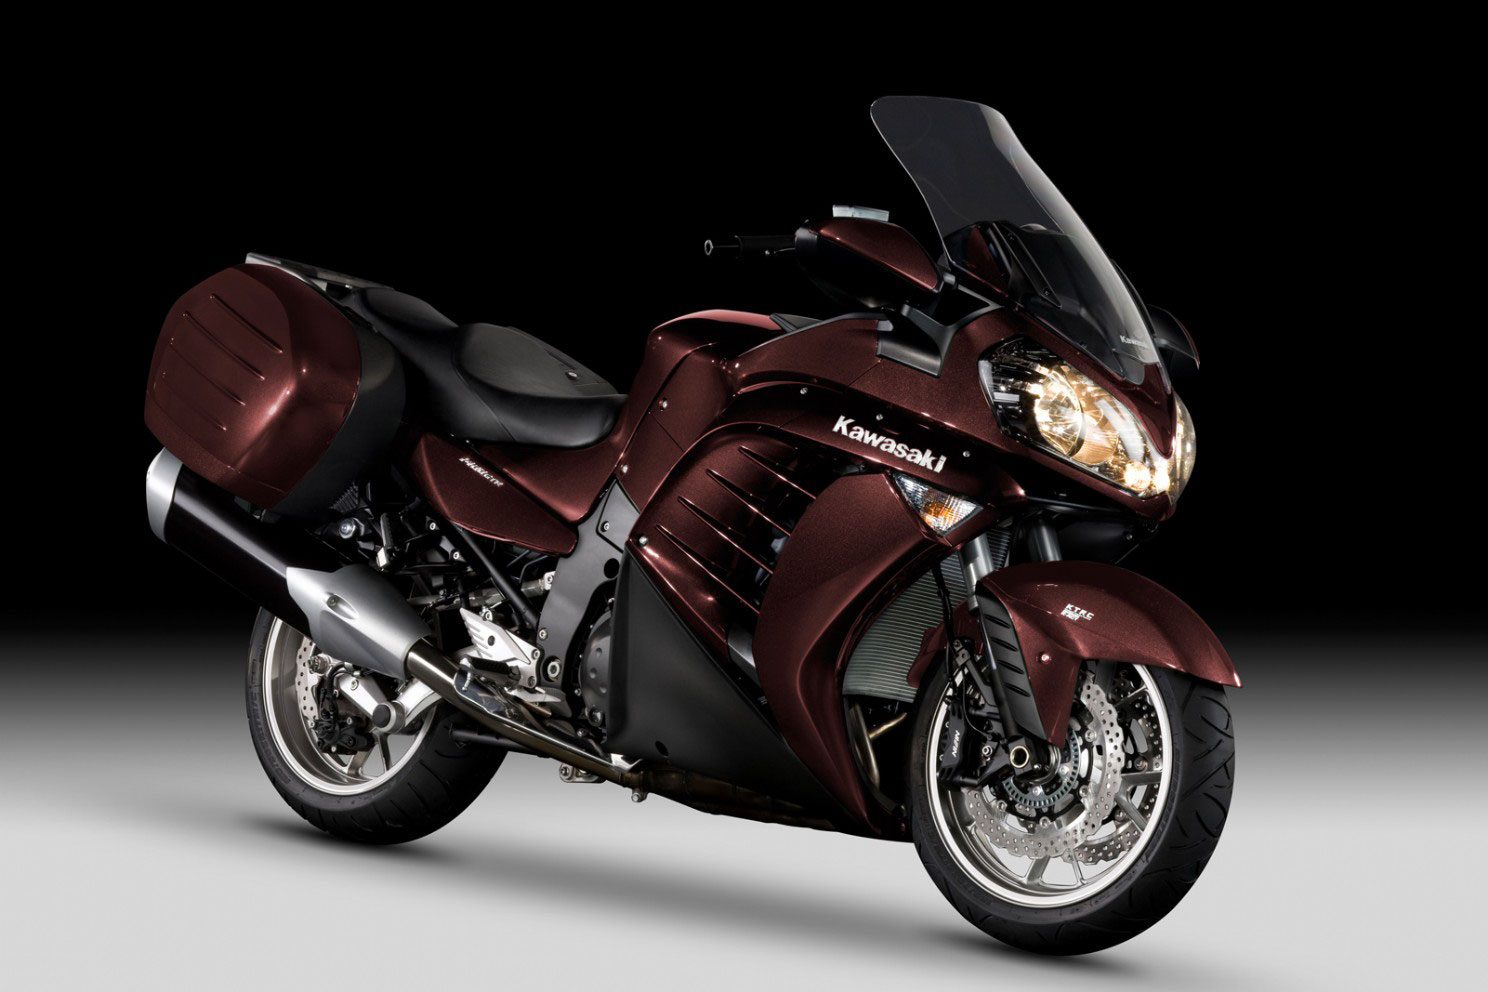 2012 Kawasaki Concours 14 ABS Review